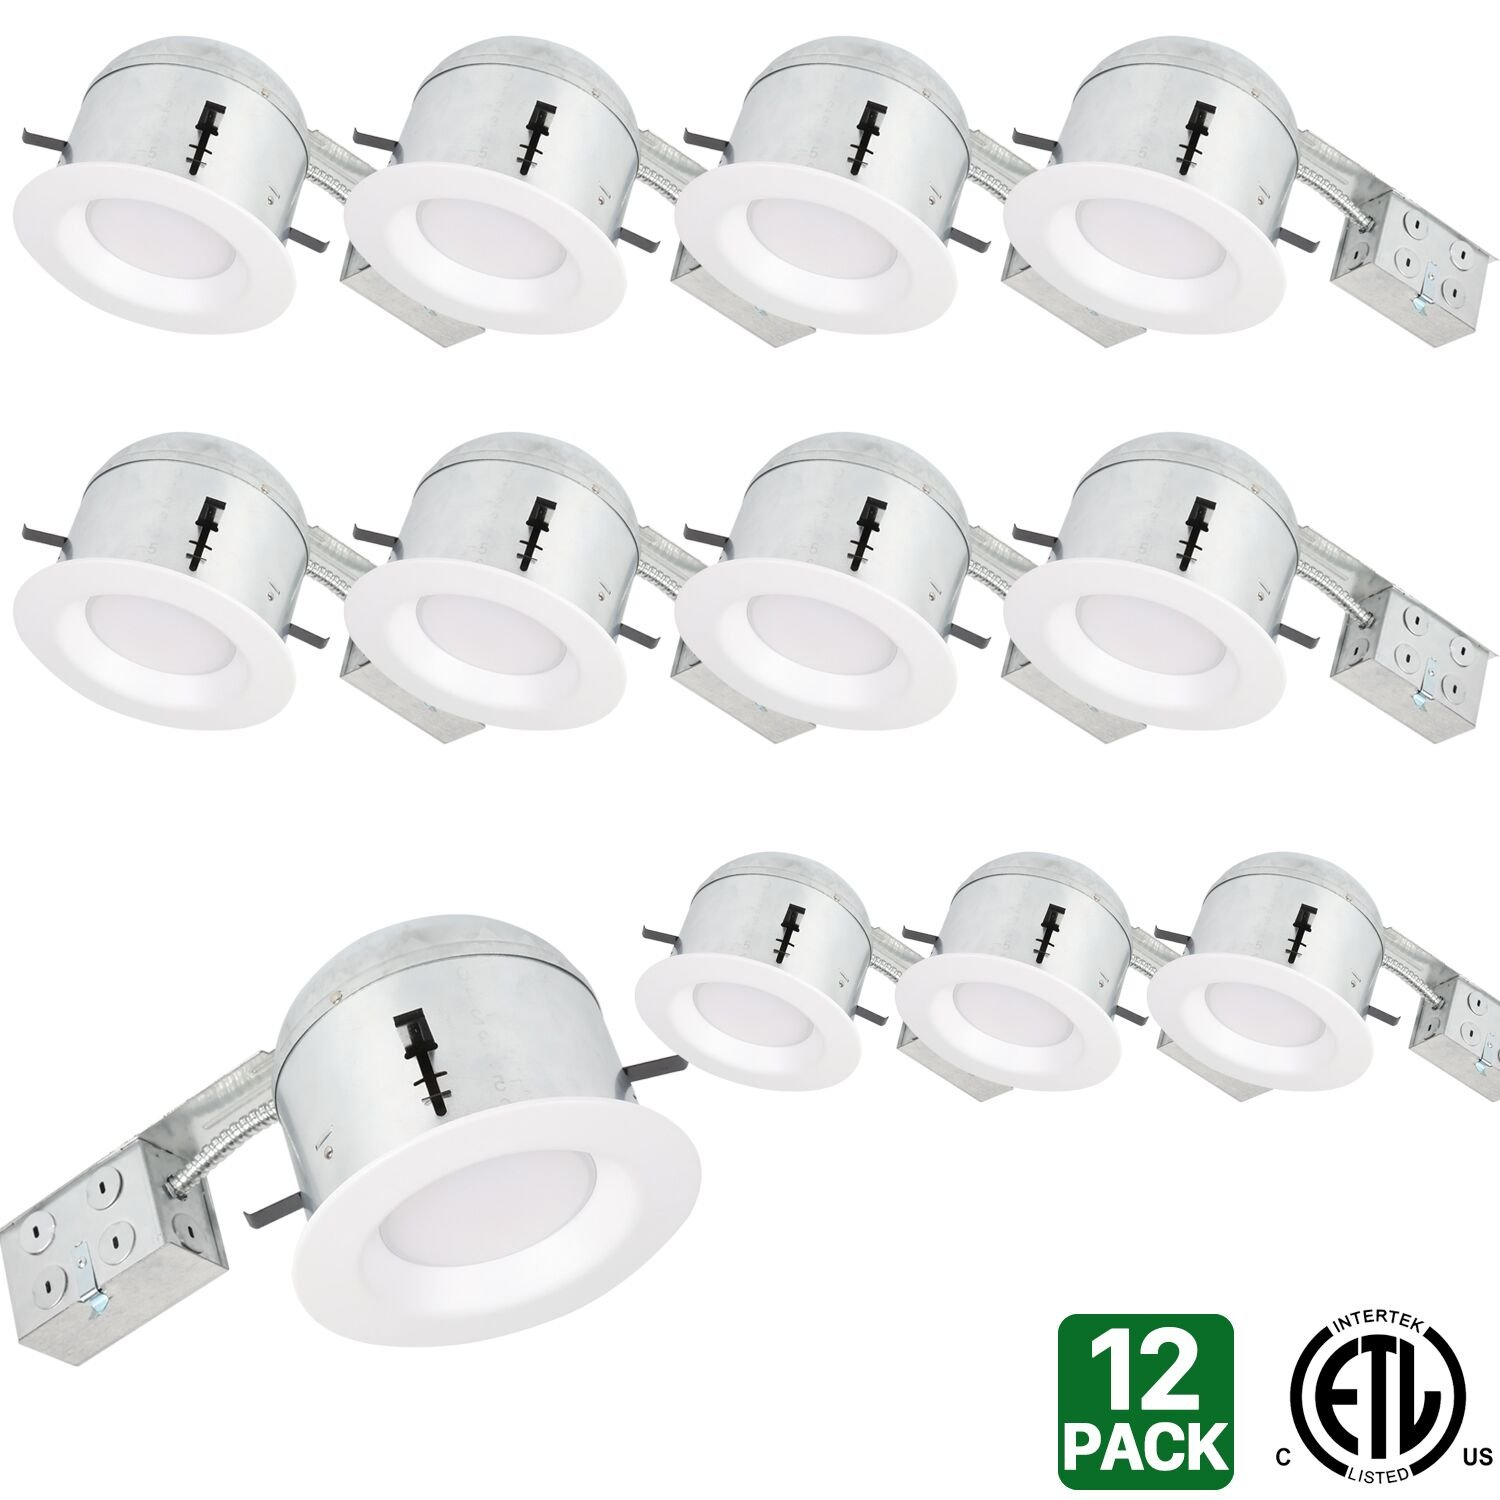 Hykolity 6'' White LED Remodel Recessed Lighting Kits, IC Rated Remodel Housing and Dimmable LED Downlight Wet Rated 15W 1100lm 5000K Daylight White ETL Listed - Pack of 12